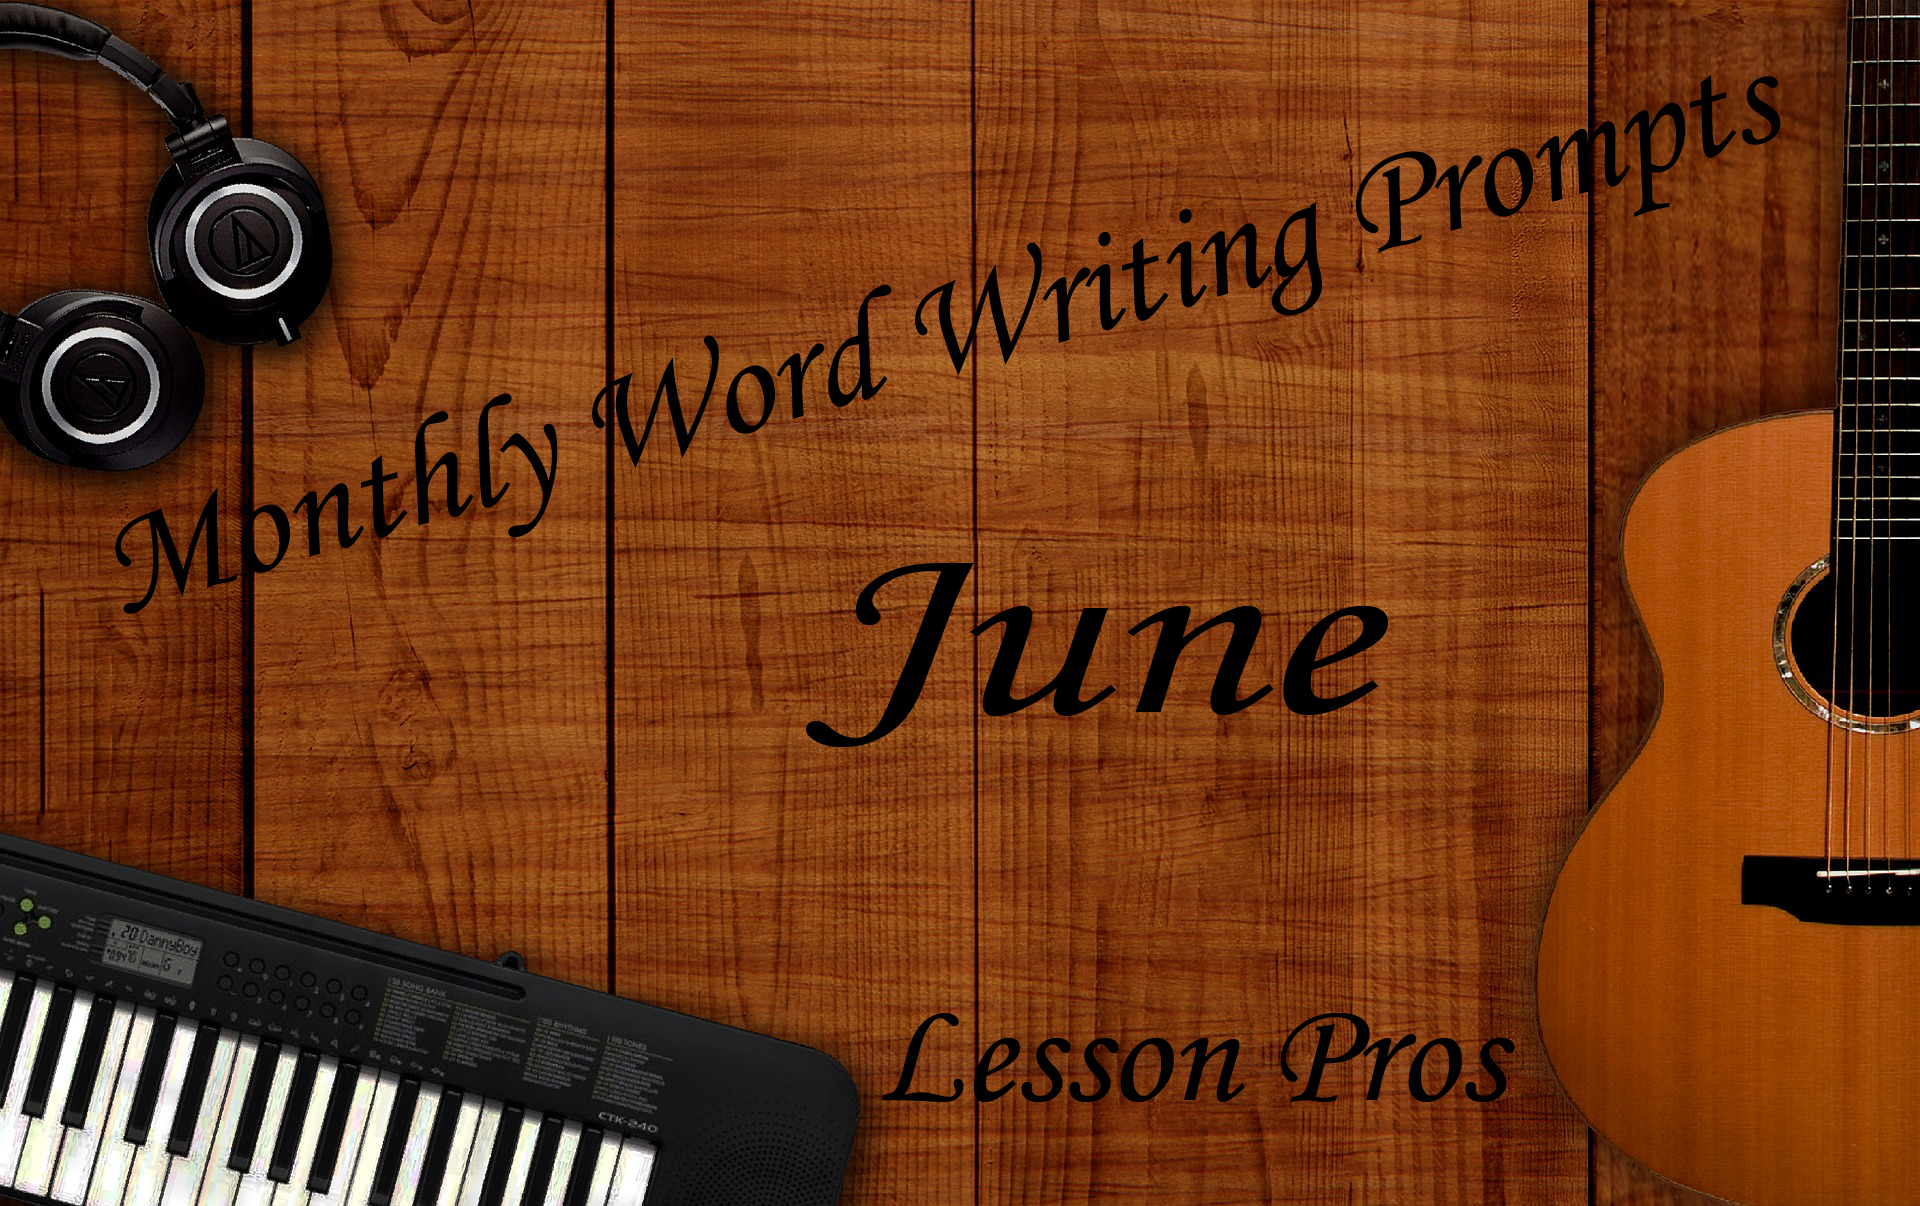 Writing Prompts - June Lesson Pros